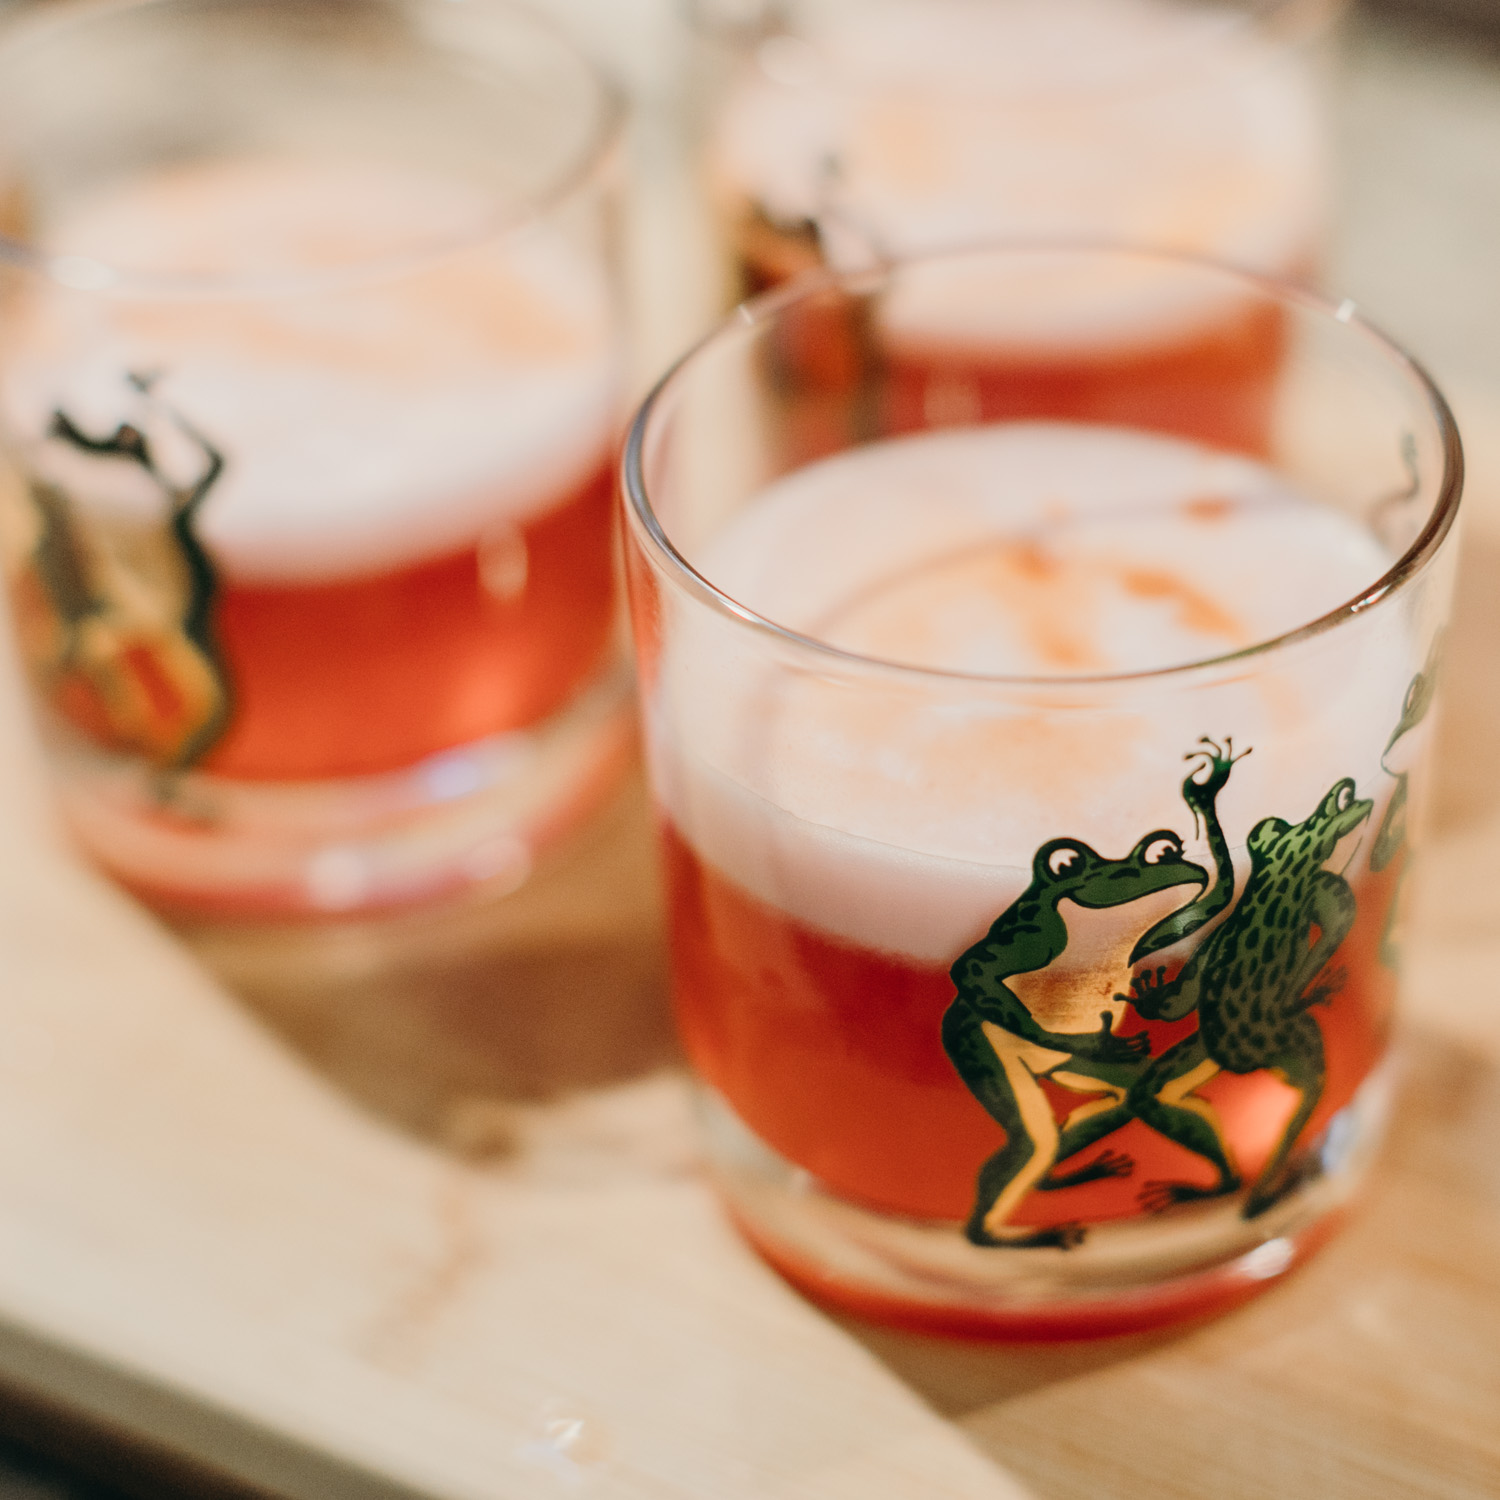 Photo of red-orange cocktails in short glasses. The glasses have dancing frogs on them.